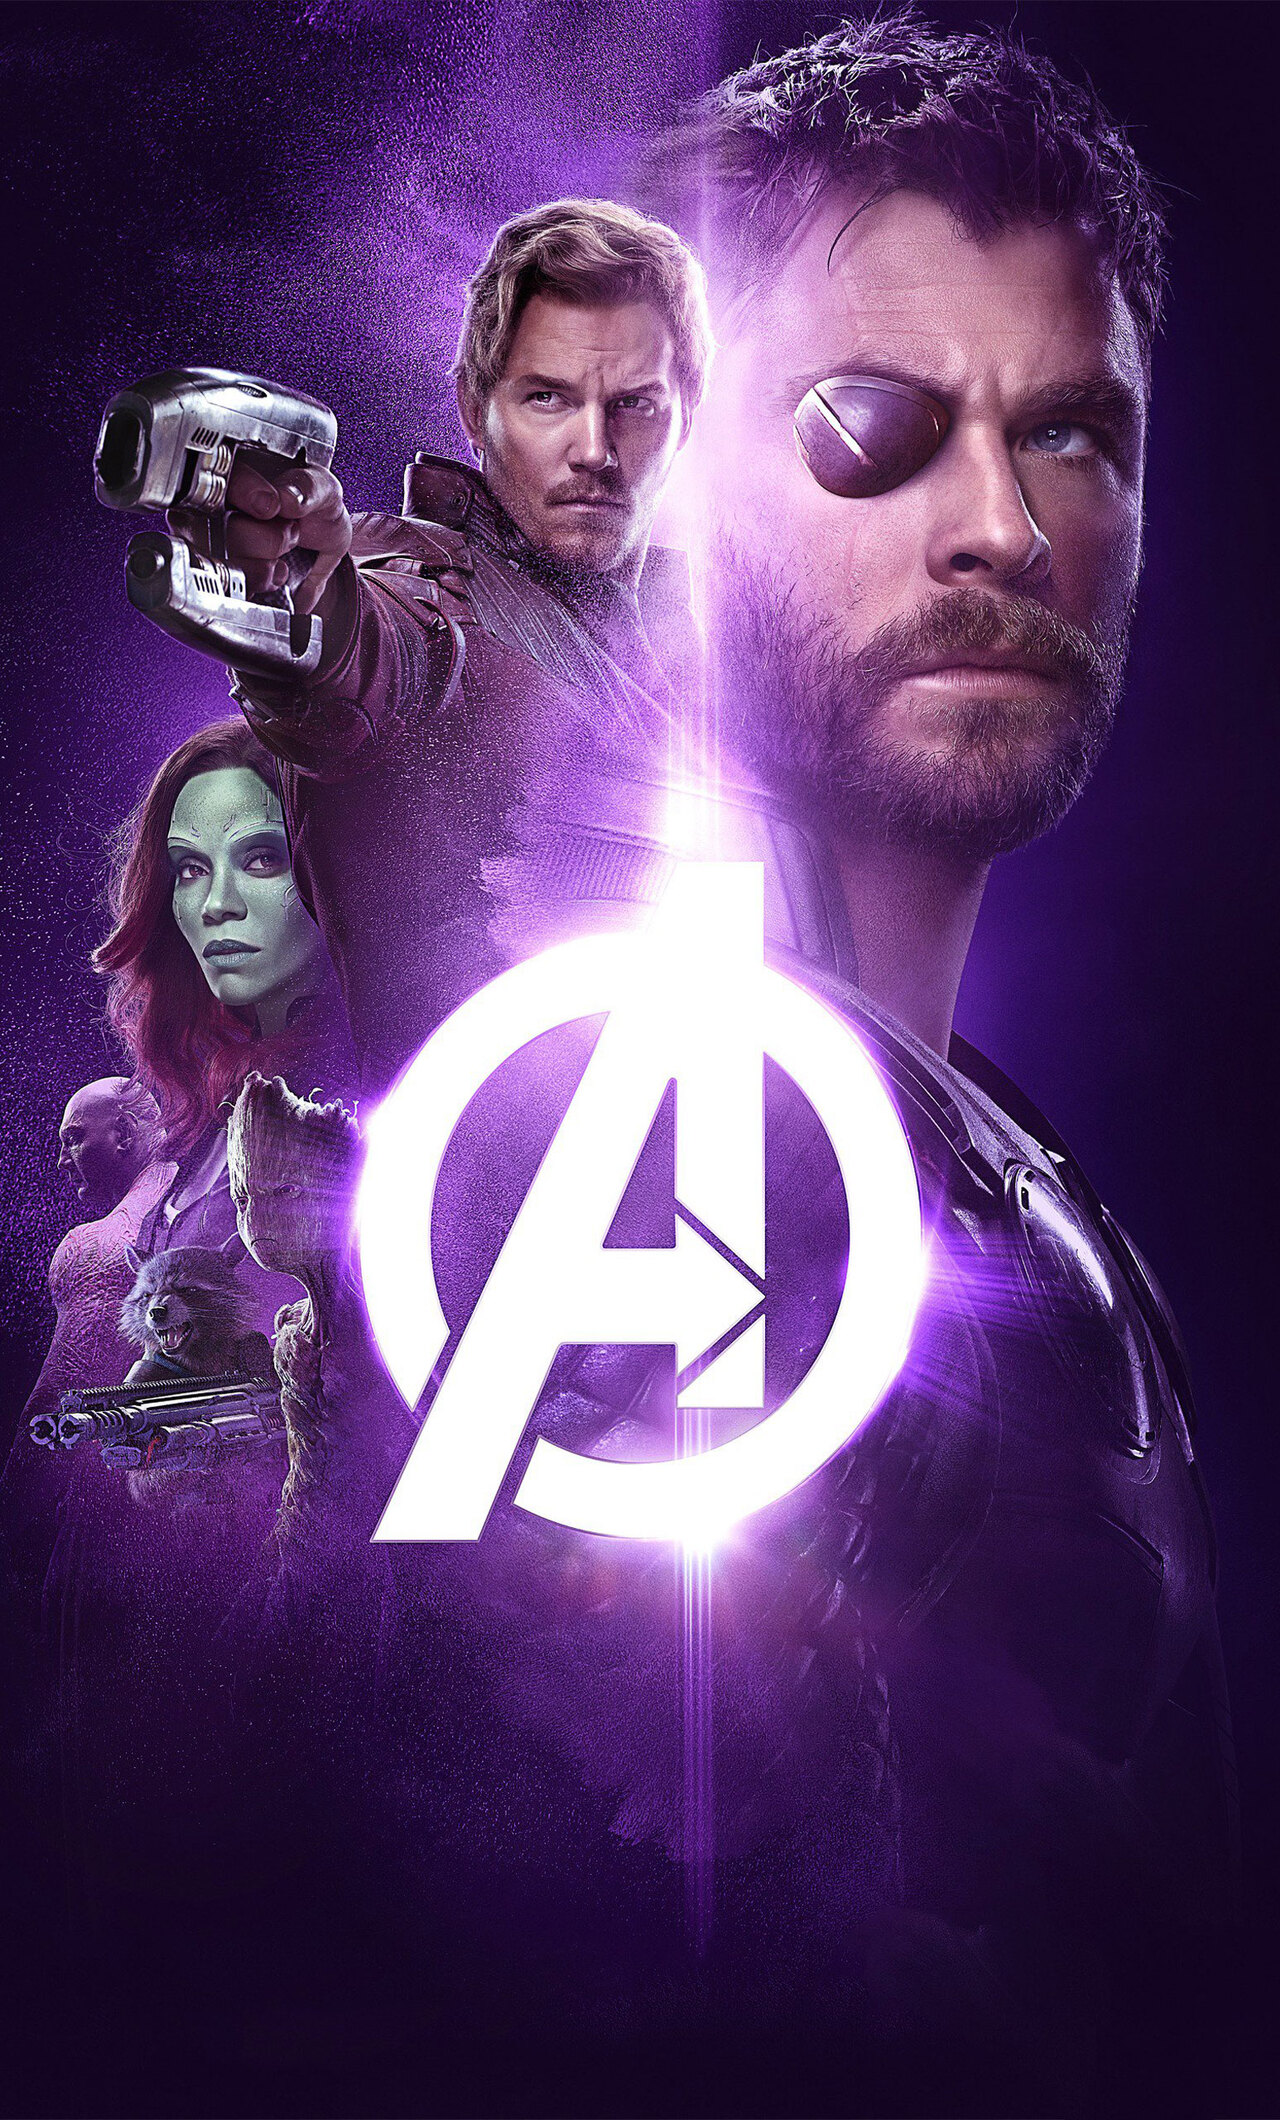 1280x2120 Avengers Infinity War 2018 Power Stone Poster 4k Iphone 6